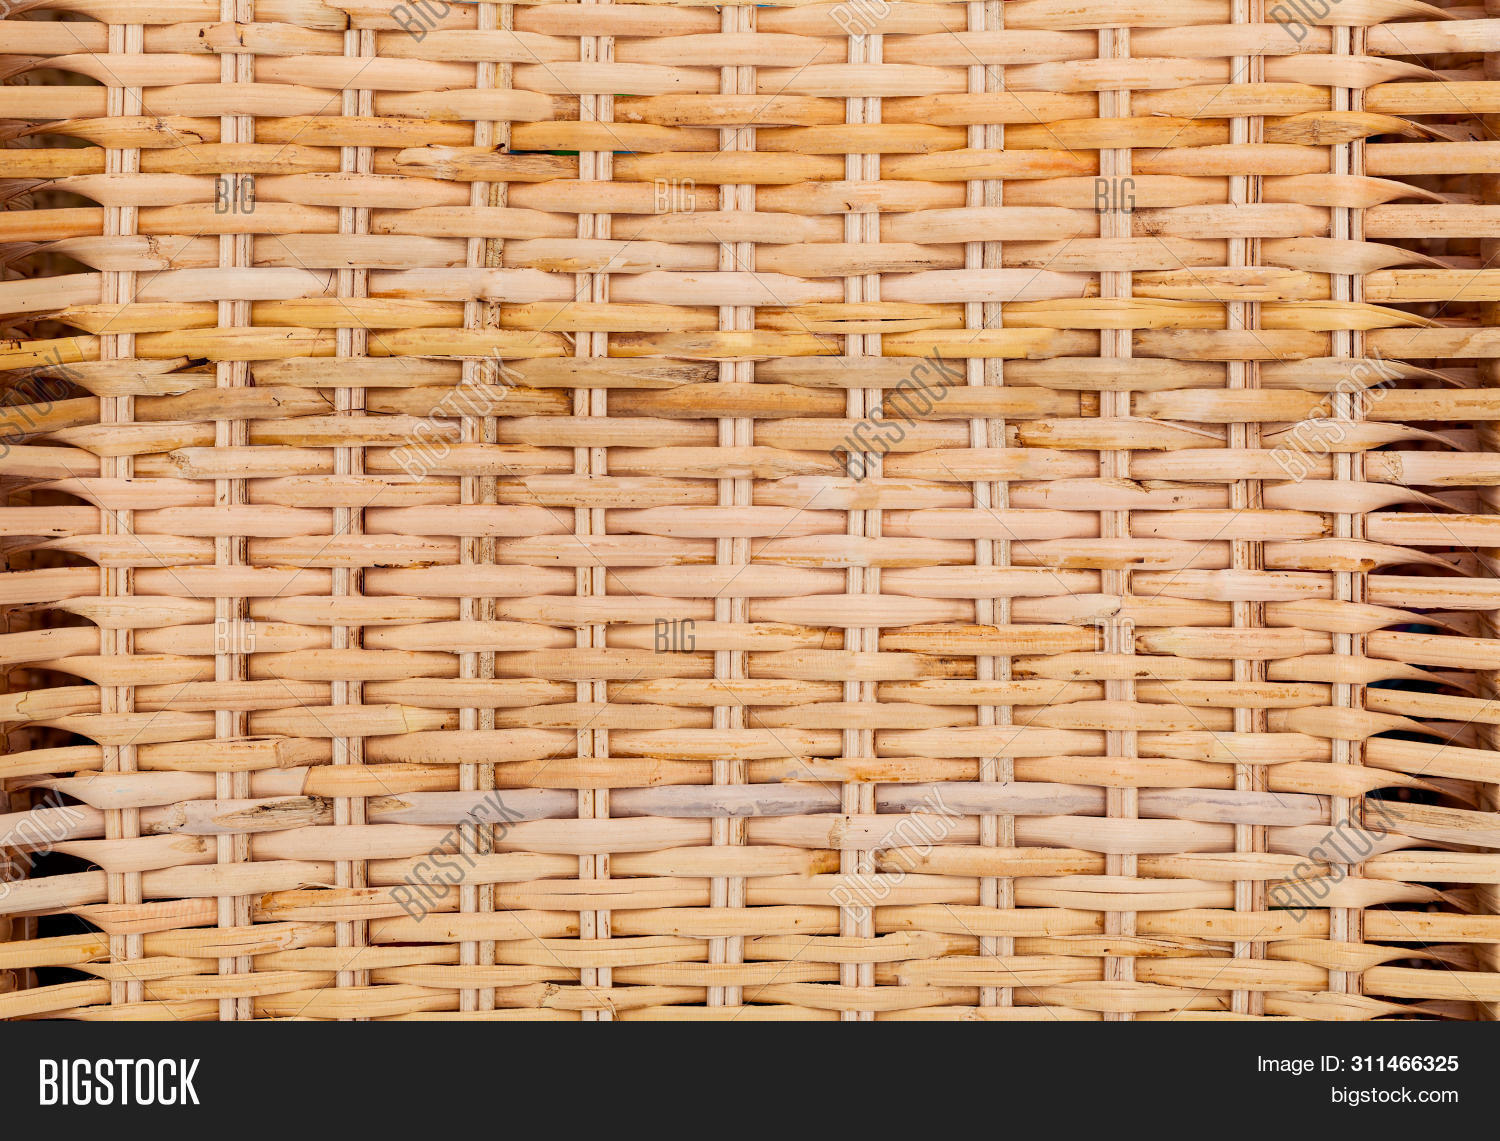 abstraction,background,braided,decor,eco-friendly,ecological,flat,fone,handcraft,handmade,lay,material,natural,pattern,rattan,texture,waste,wicker,zero